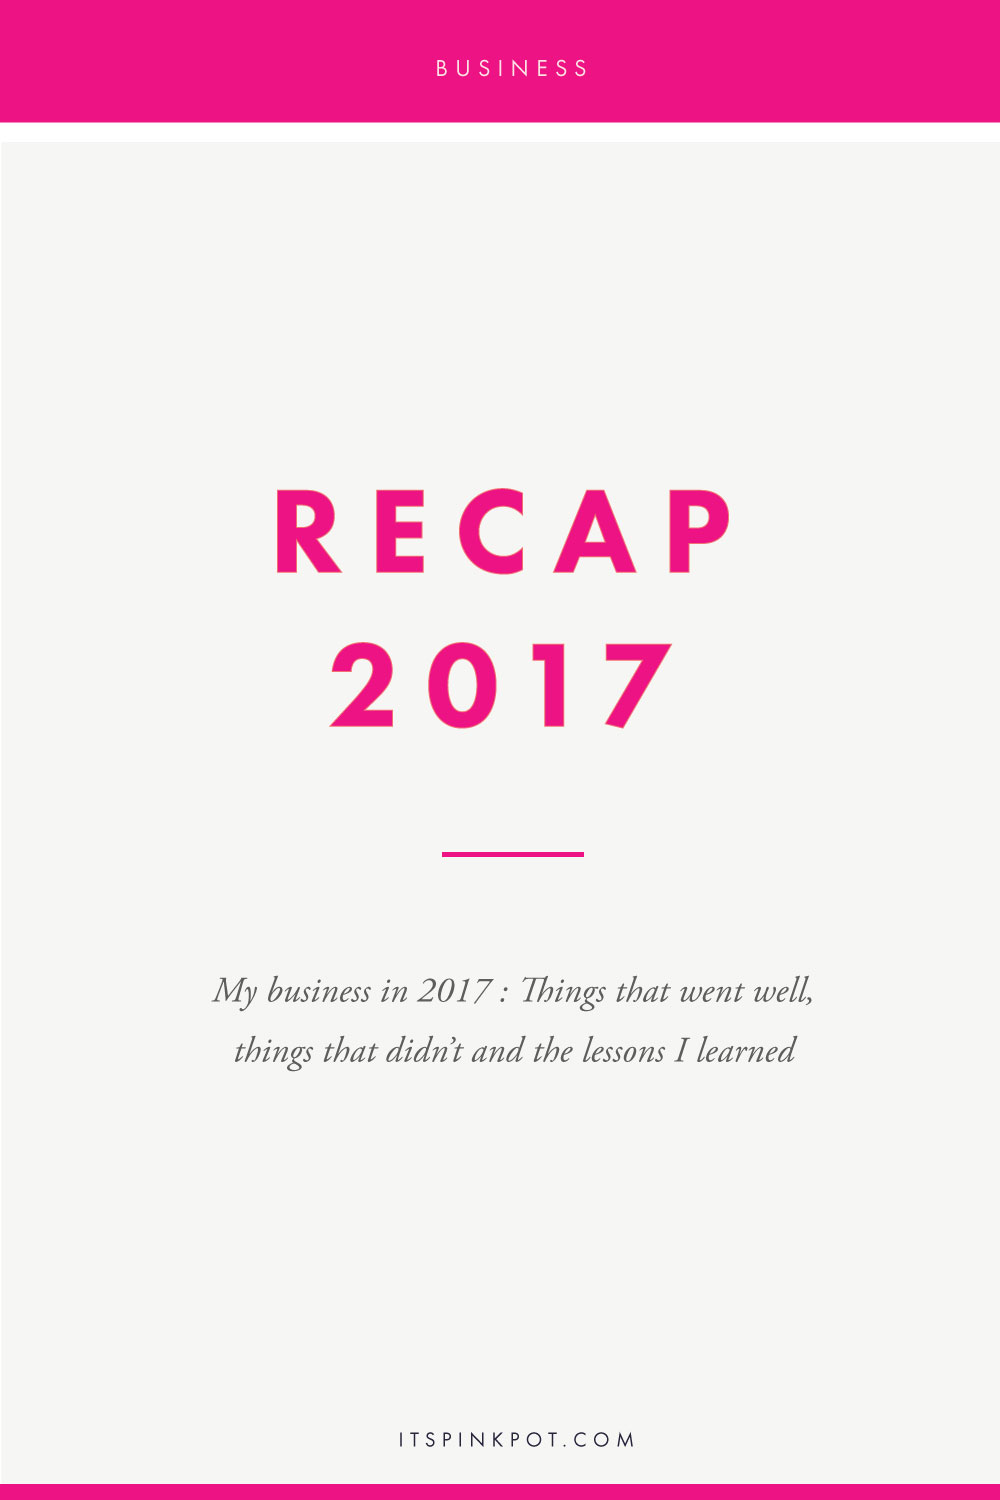 At the end of 2016, I was feeling burnt out. All year, there was nothing I could think about except my business and so I decided to cut down on work and live my life in 2017. And so I did. And contrary to what I believed would happen - my income doubled, I expanded my team, I had amazing business opportunities and more than anything, I better business owner. Here are the things I did and lessons I learnt in 2017 >> click here to read!